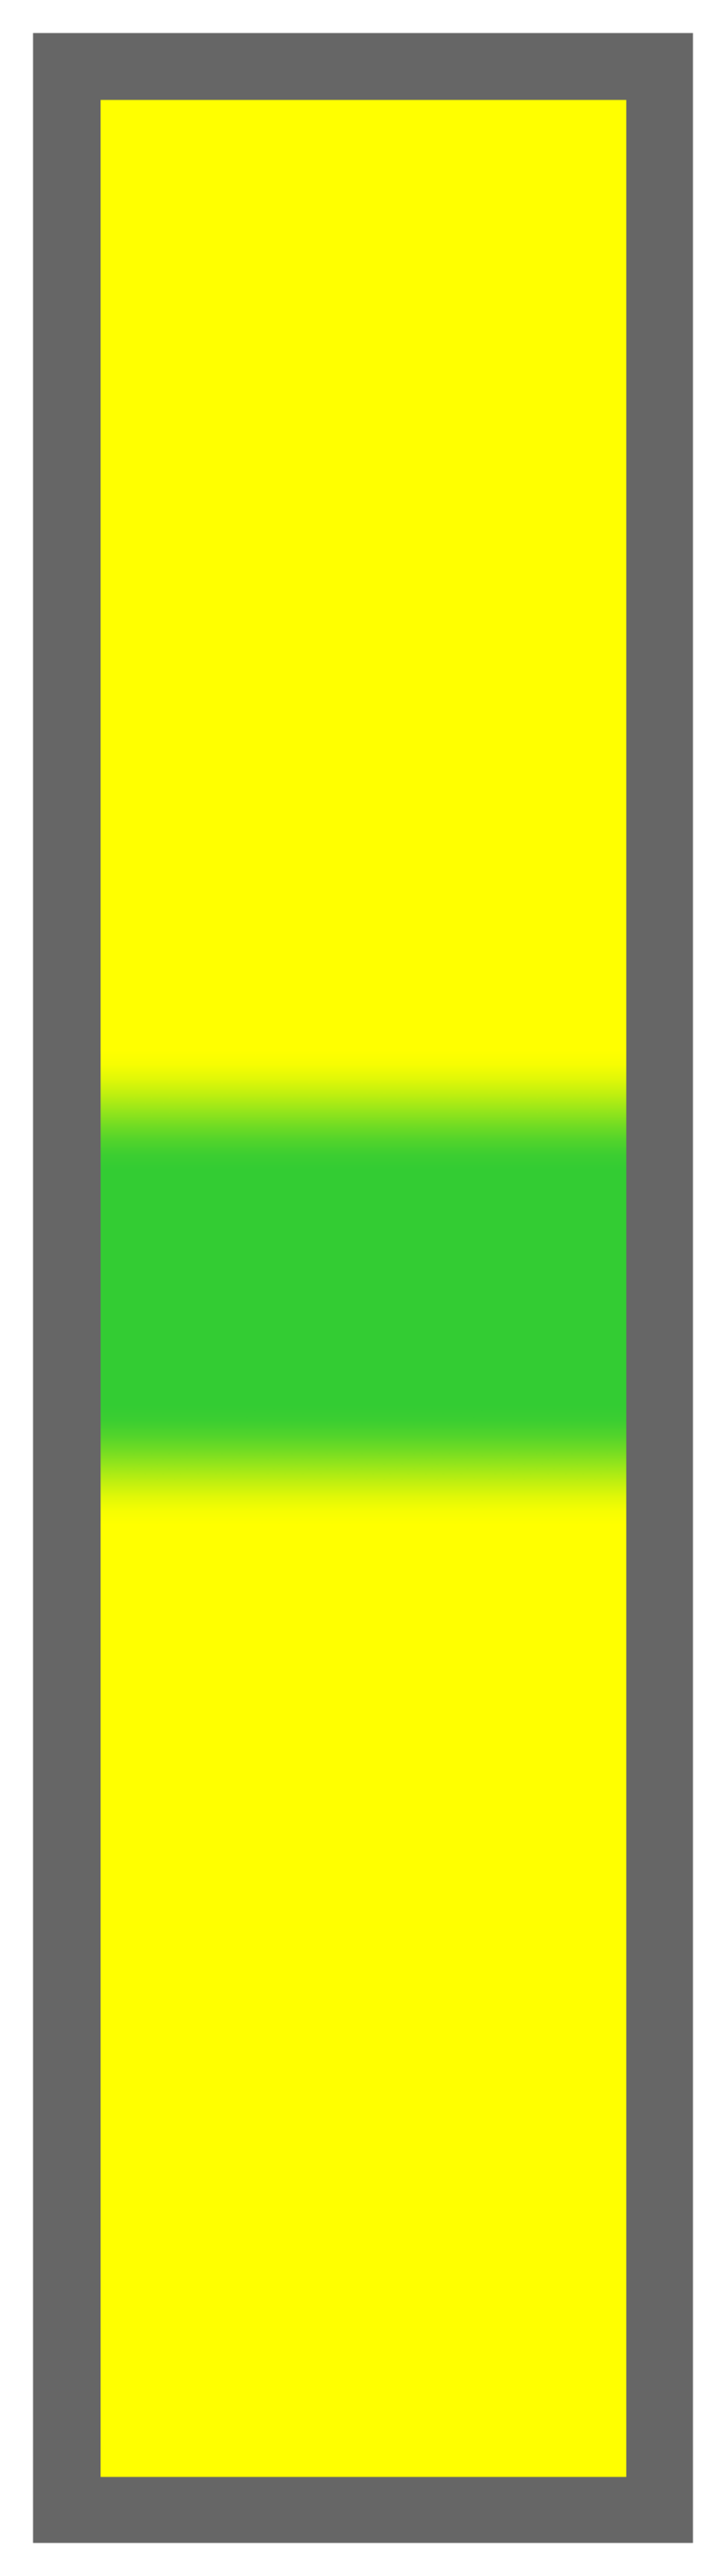 Yellow-Lime Green Center Tailless